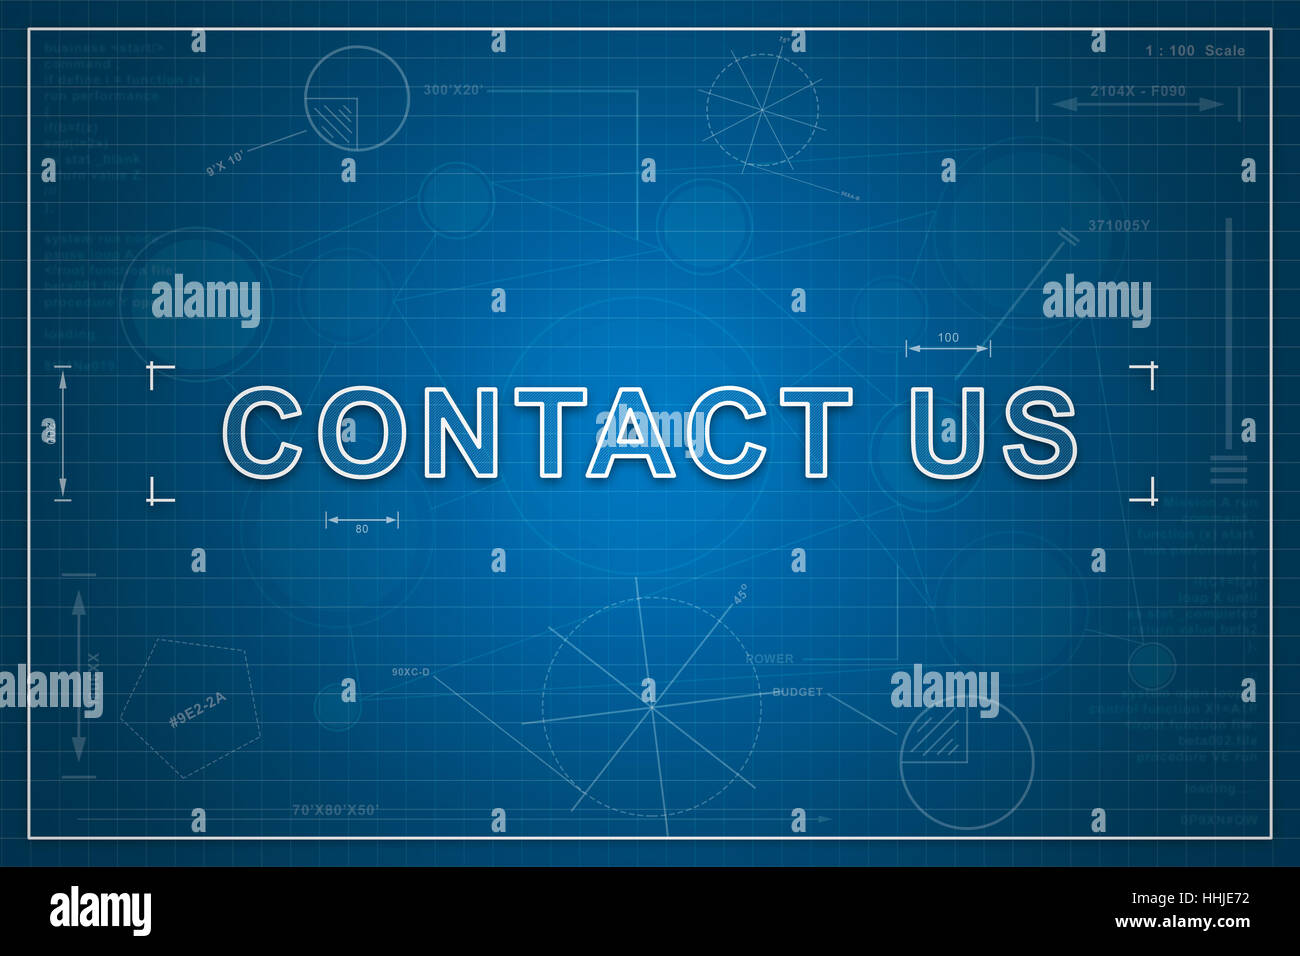 Contact us on paper blueprint background business concept stock contact us on paper blueprint background business concept malvernweather Gallery